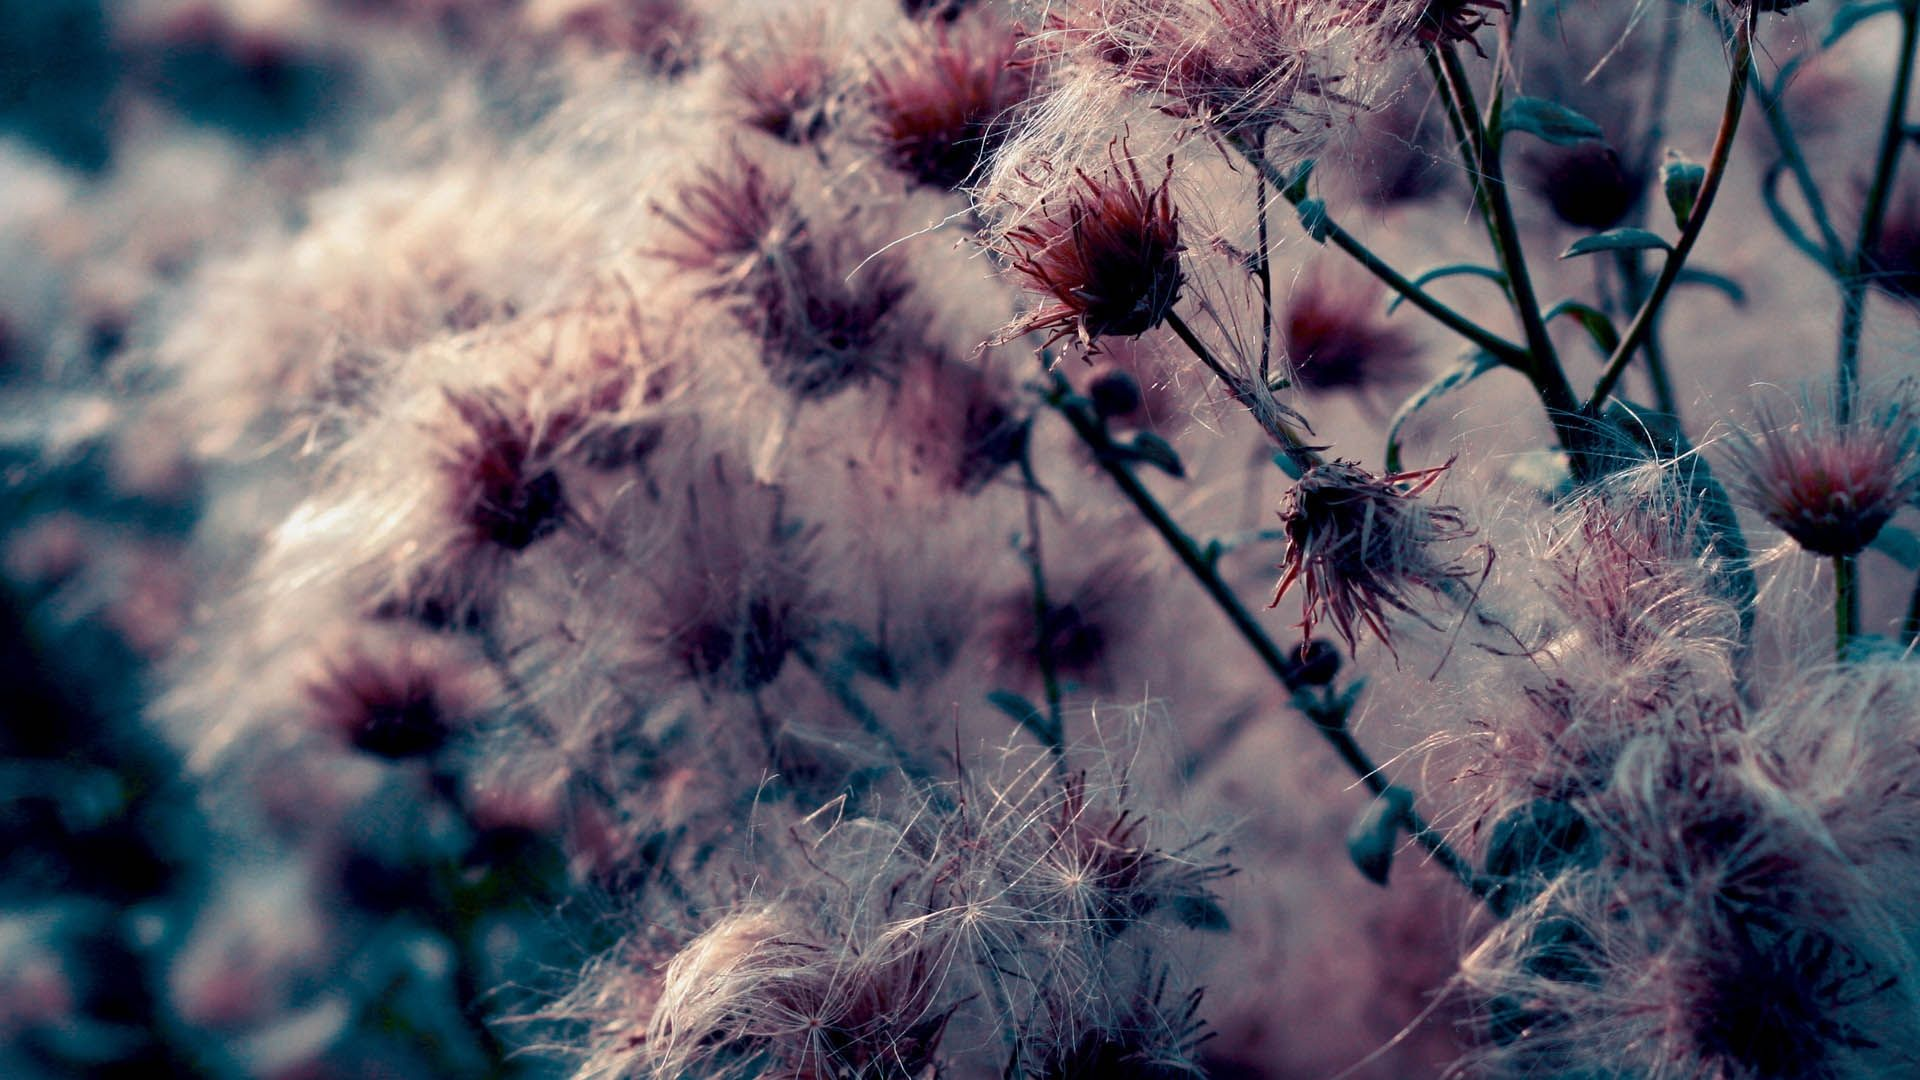 Thistle wallpaper for pc